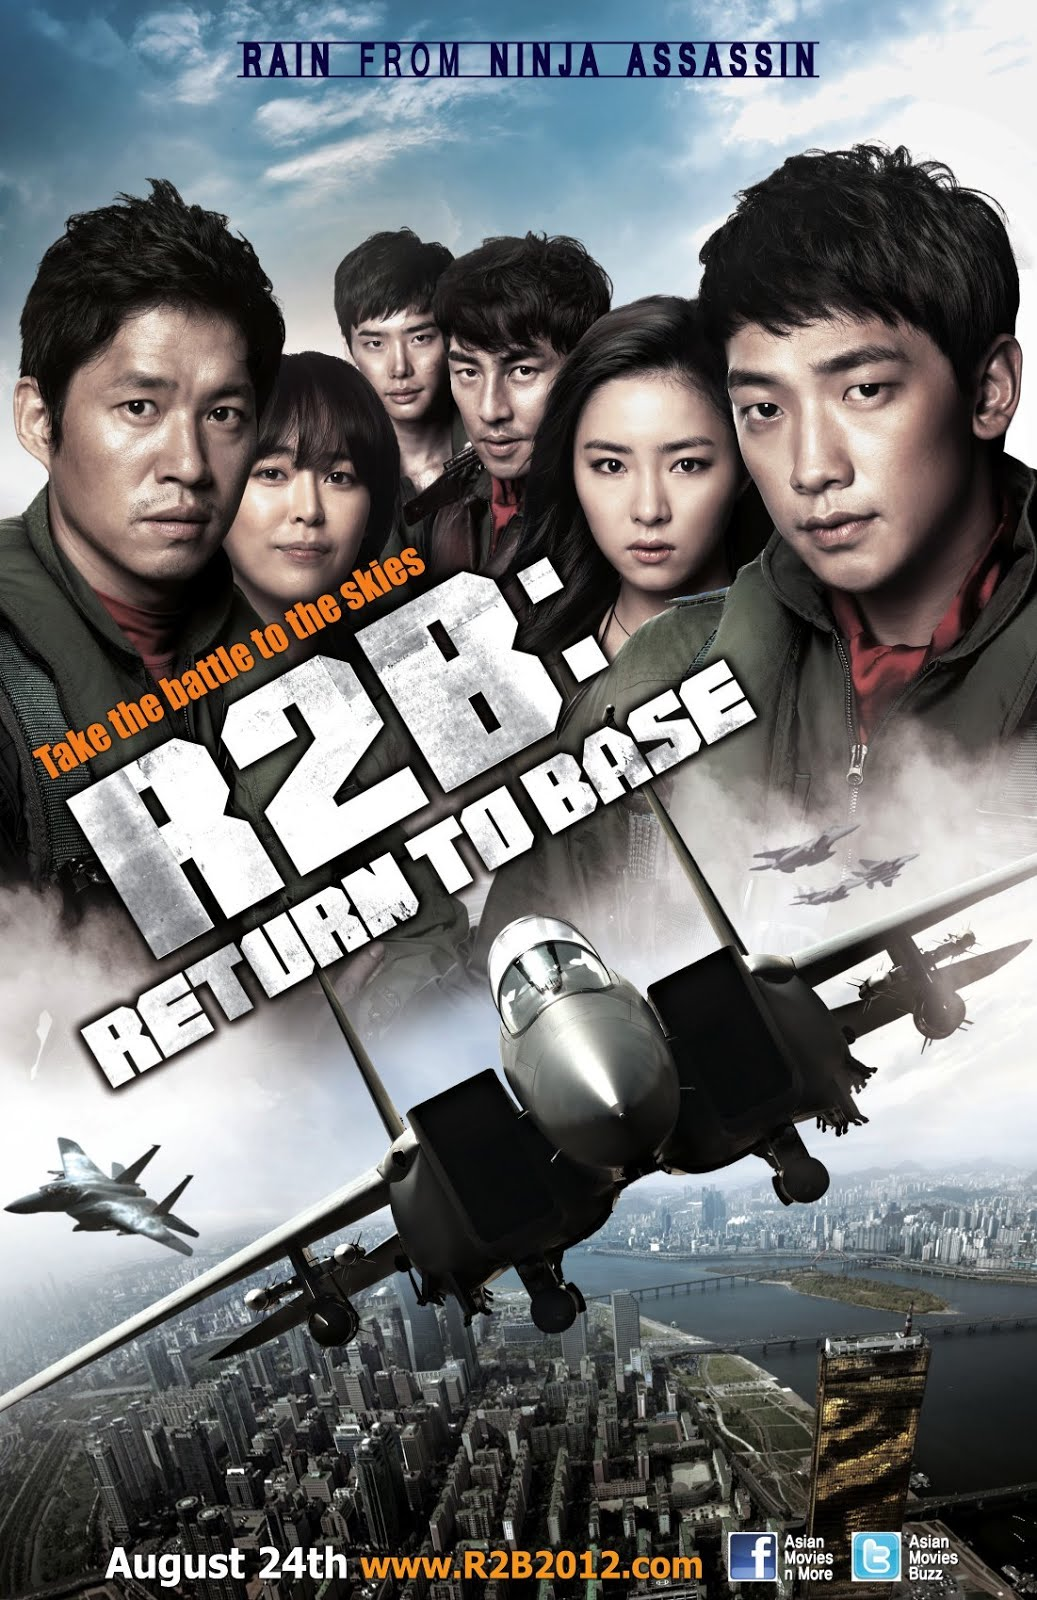 R2B: Return to Base ( Soar Into the Sun )